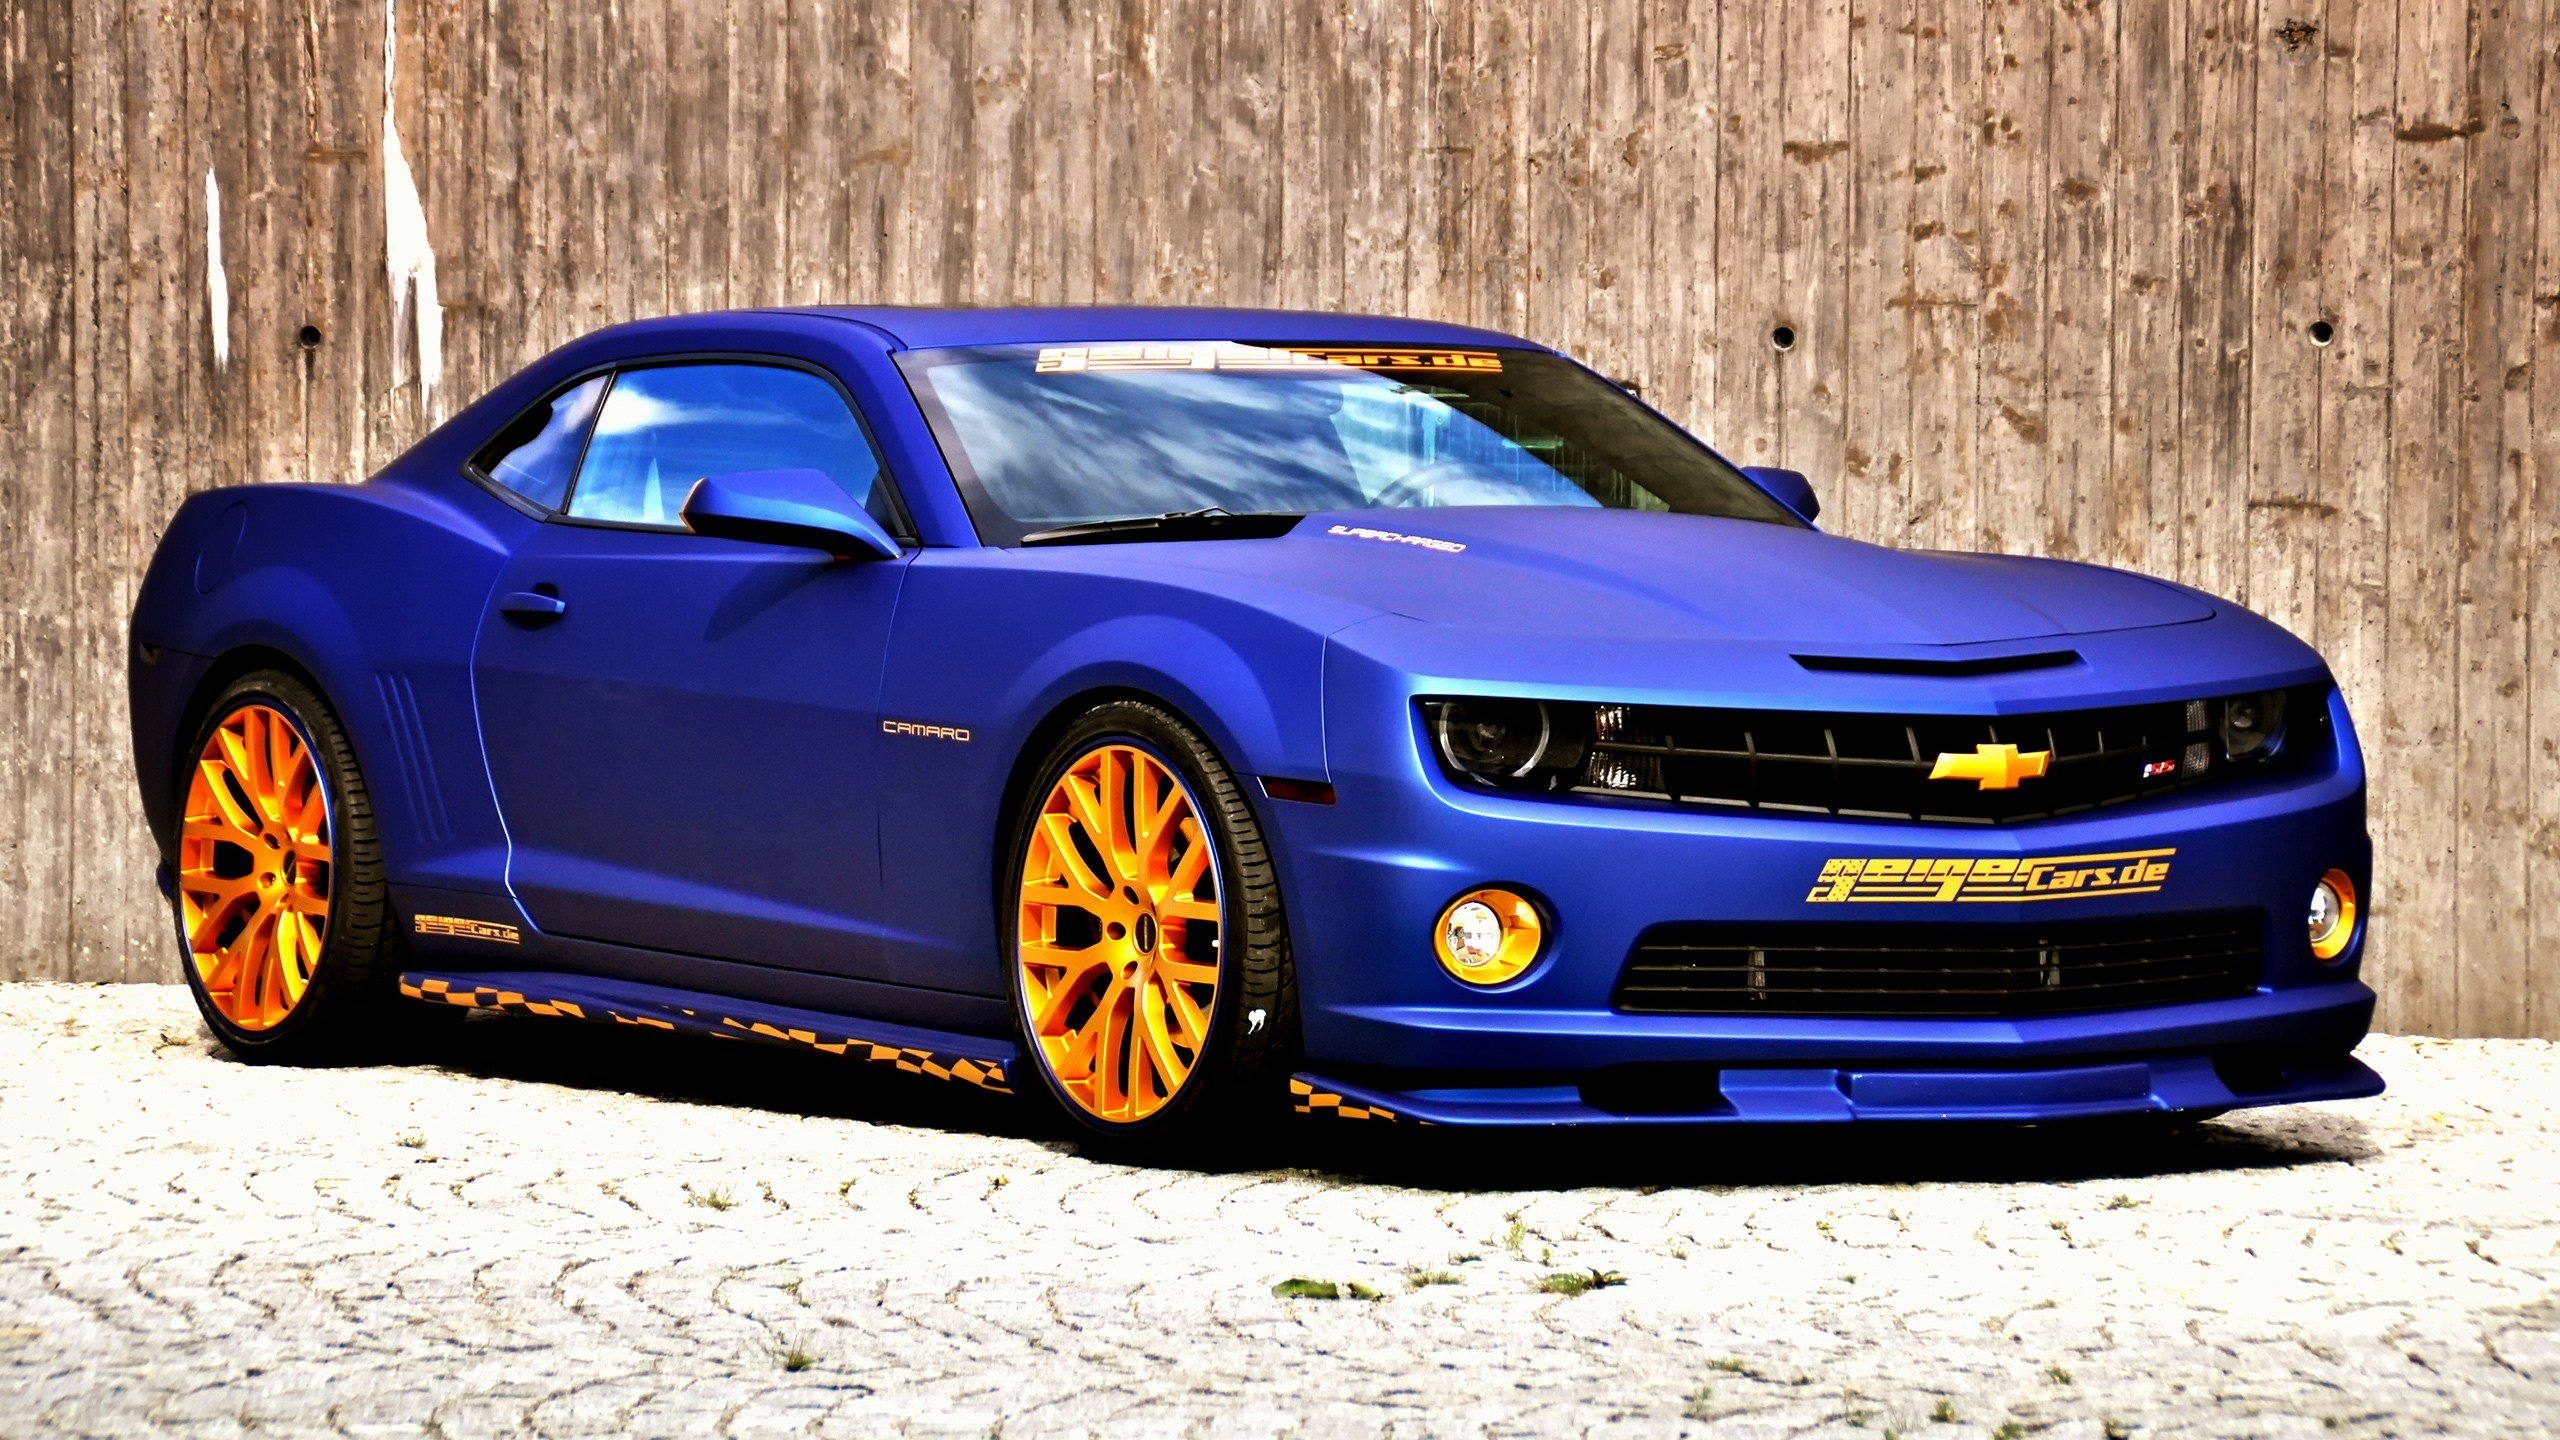 New Geiger Chevrolet Camaro Ss Wallpaper Hd Car Wallpapers On This Month